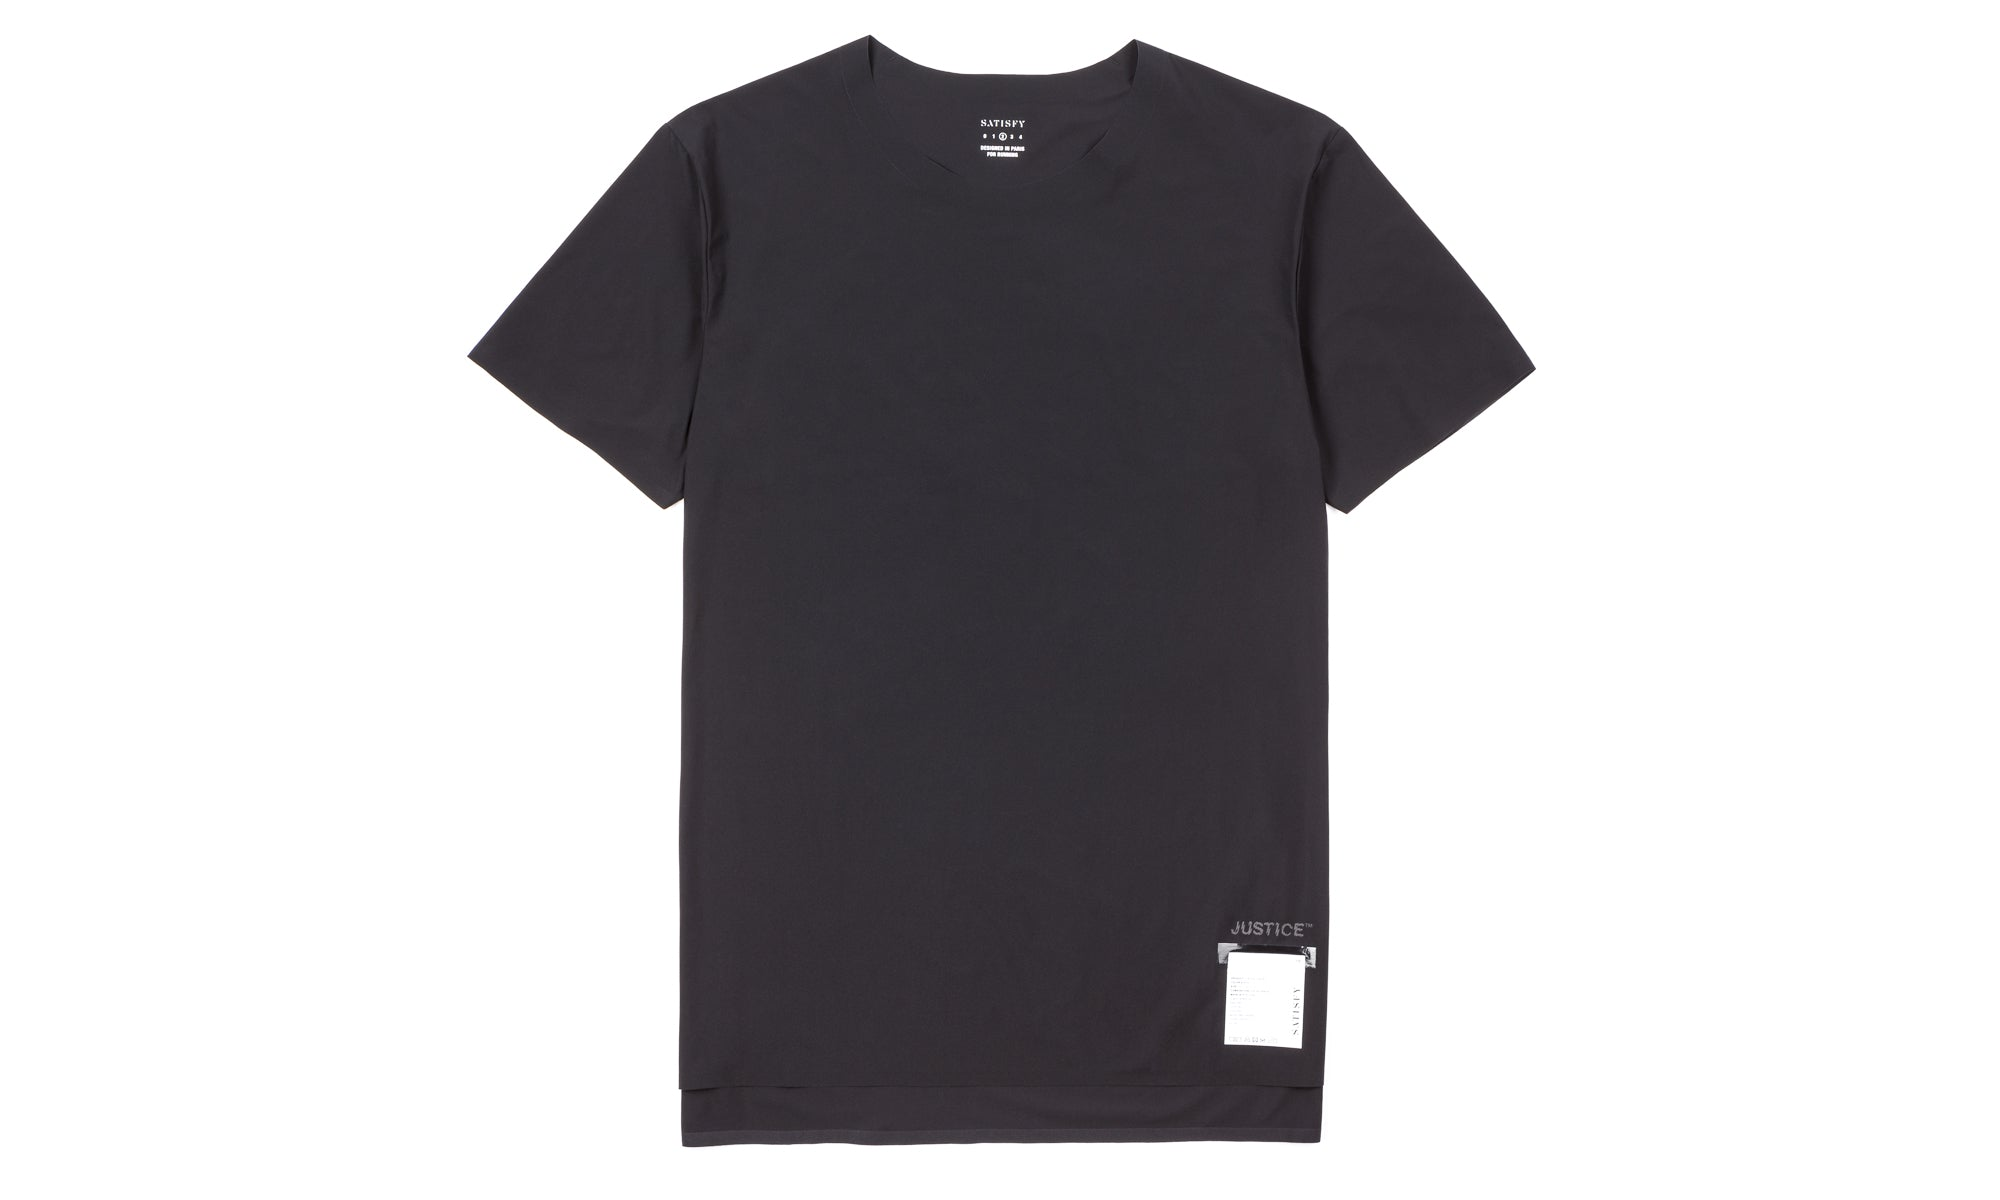 Justice T-Shirt - Front